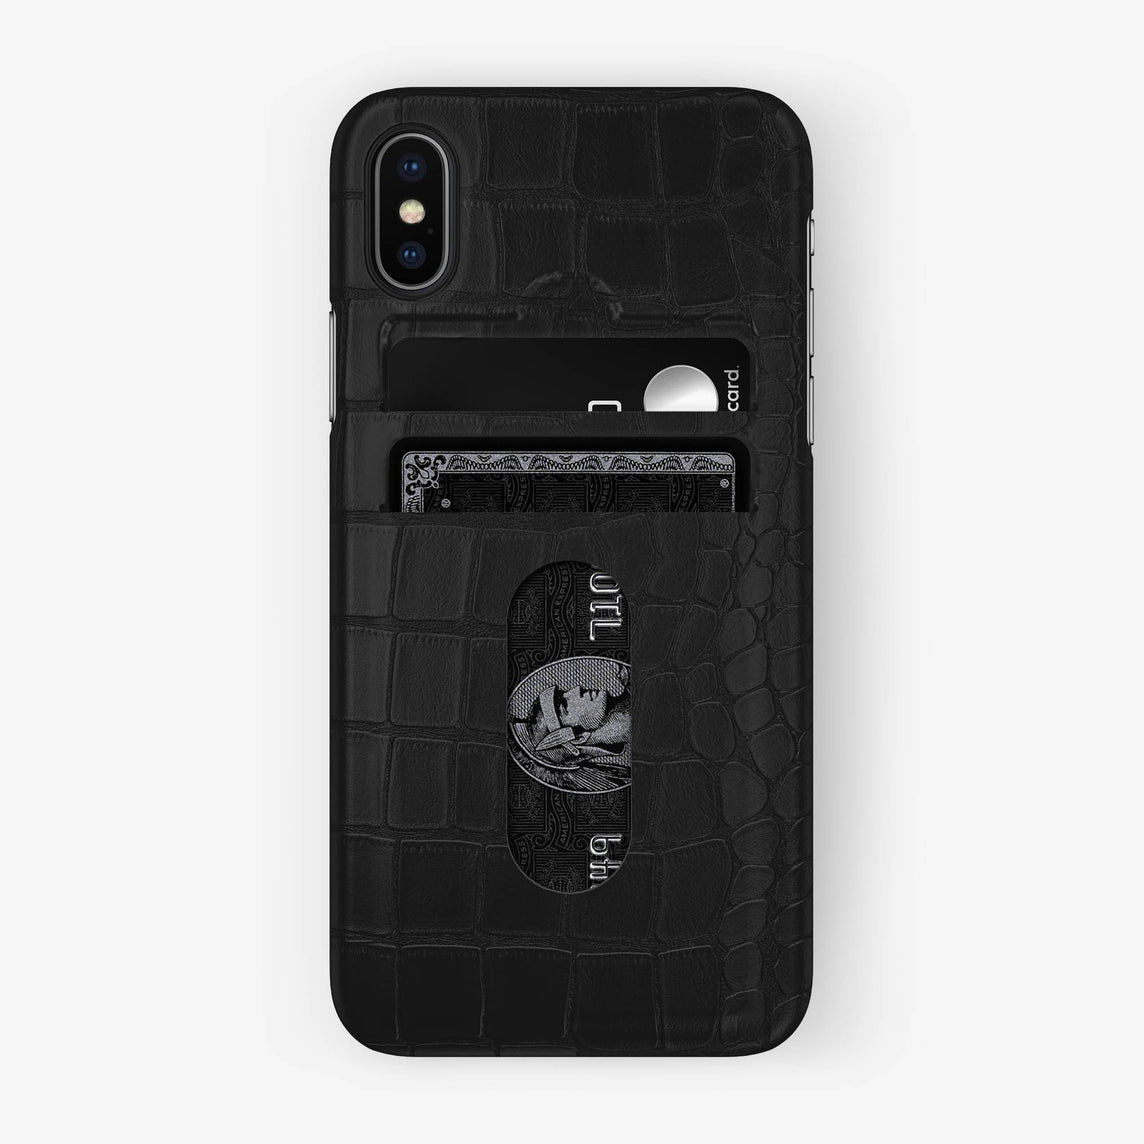 Alligator Card Holder Case iPhone X/Xs | Phantom Black - Black with-personalization